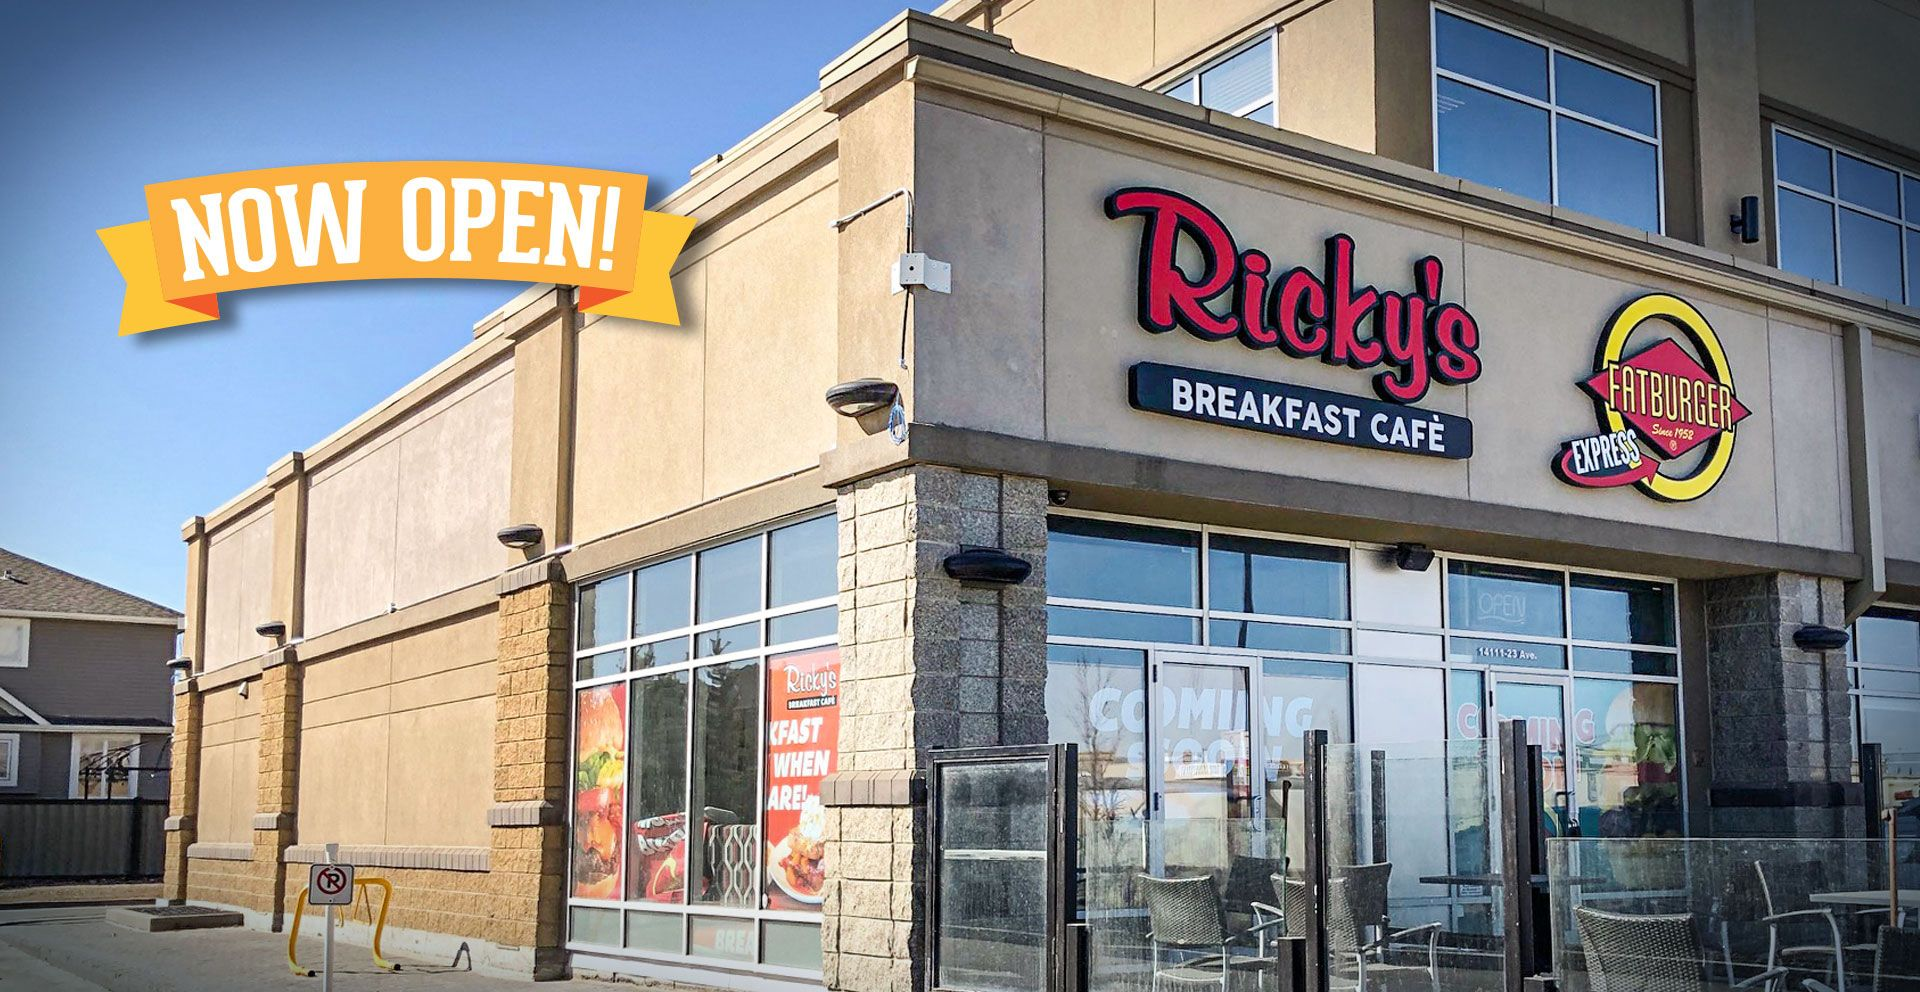 Our newest Ricky's Breakfast Cafe has opened at The Market at Magrath alongside a Fatburger Express!  Check out our Fresh Waffle & Pancake Station - made to order right before your eyes.